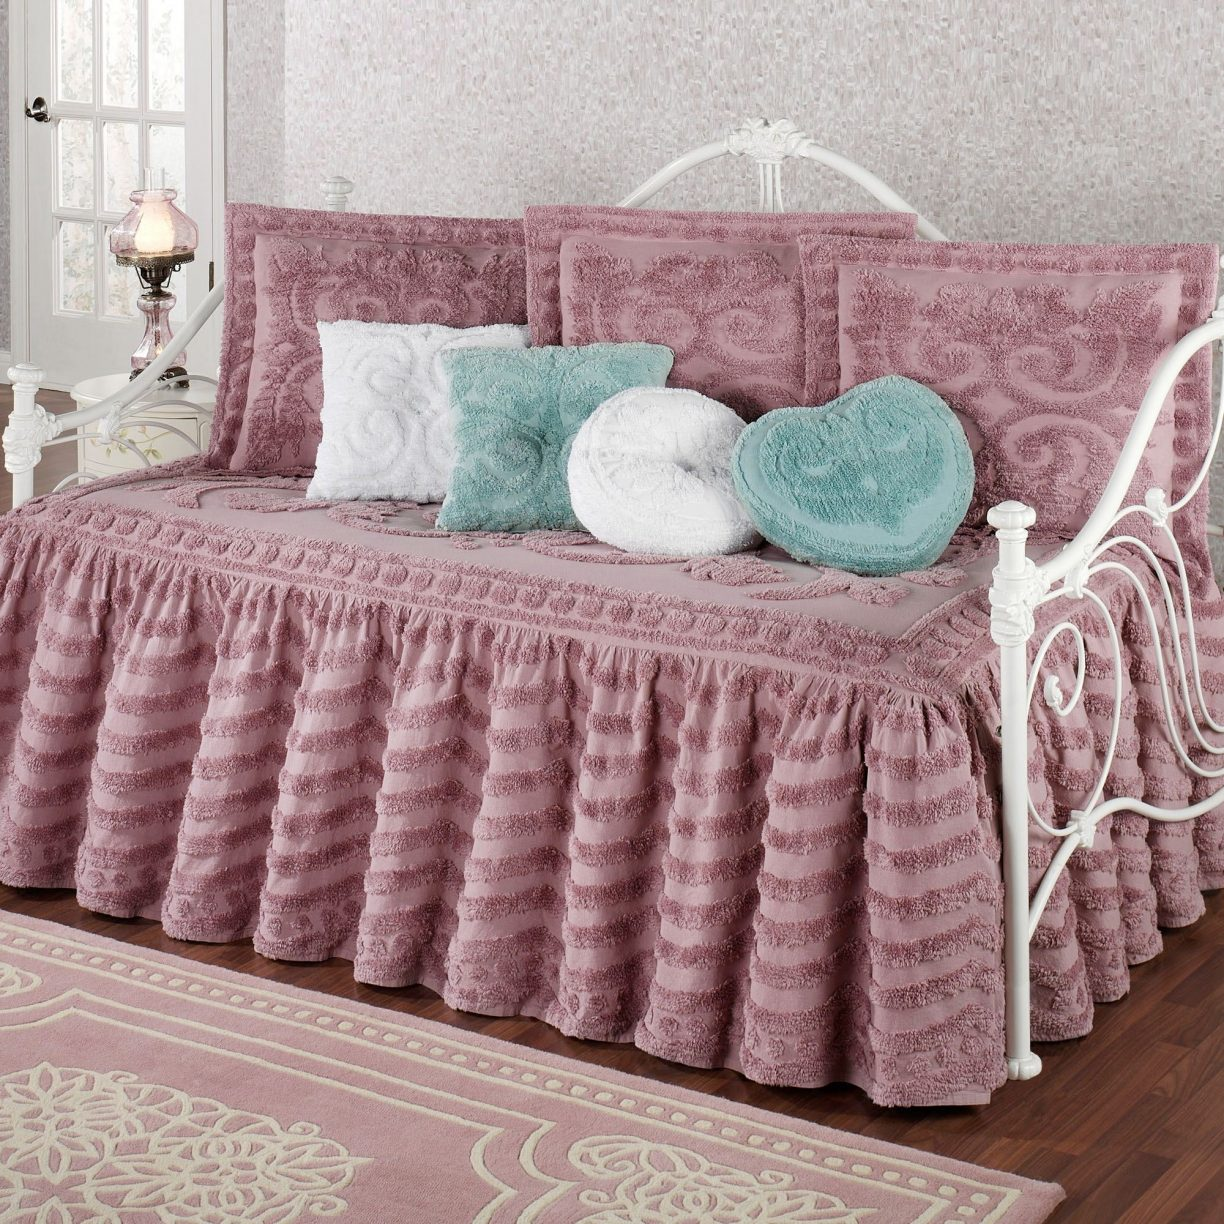 custom daybed bedding sets photo - 10